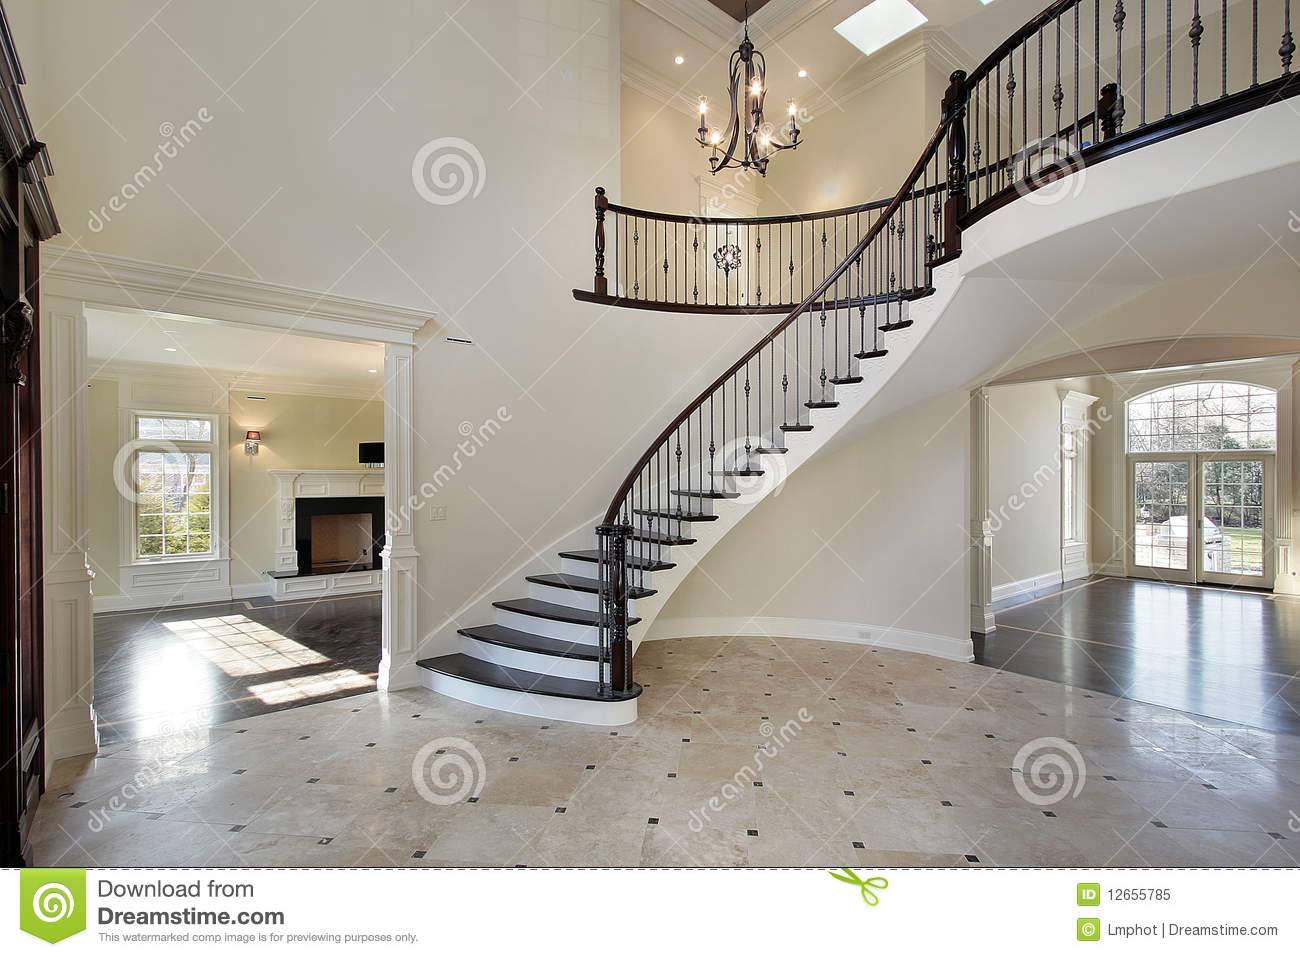 Foyer With Circular Staircase Stock Image Image 12655785